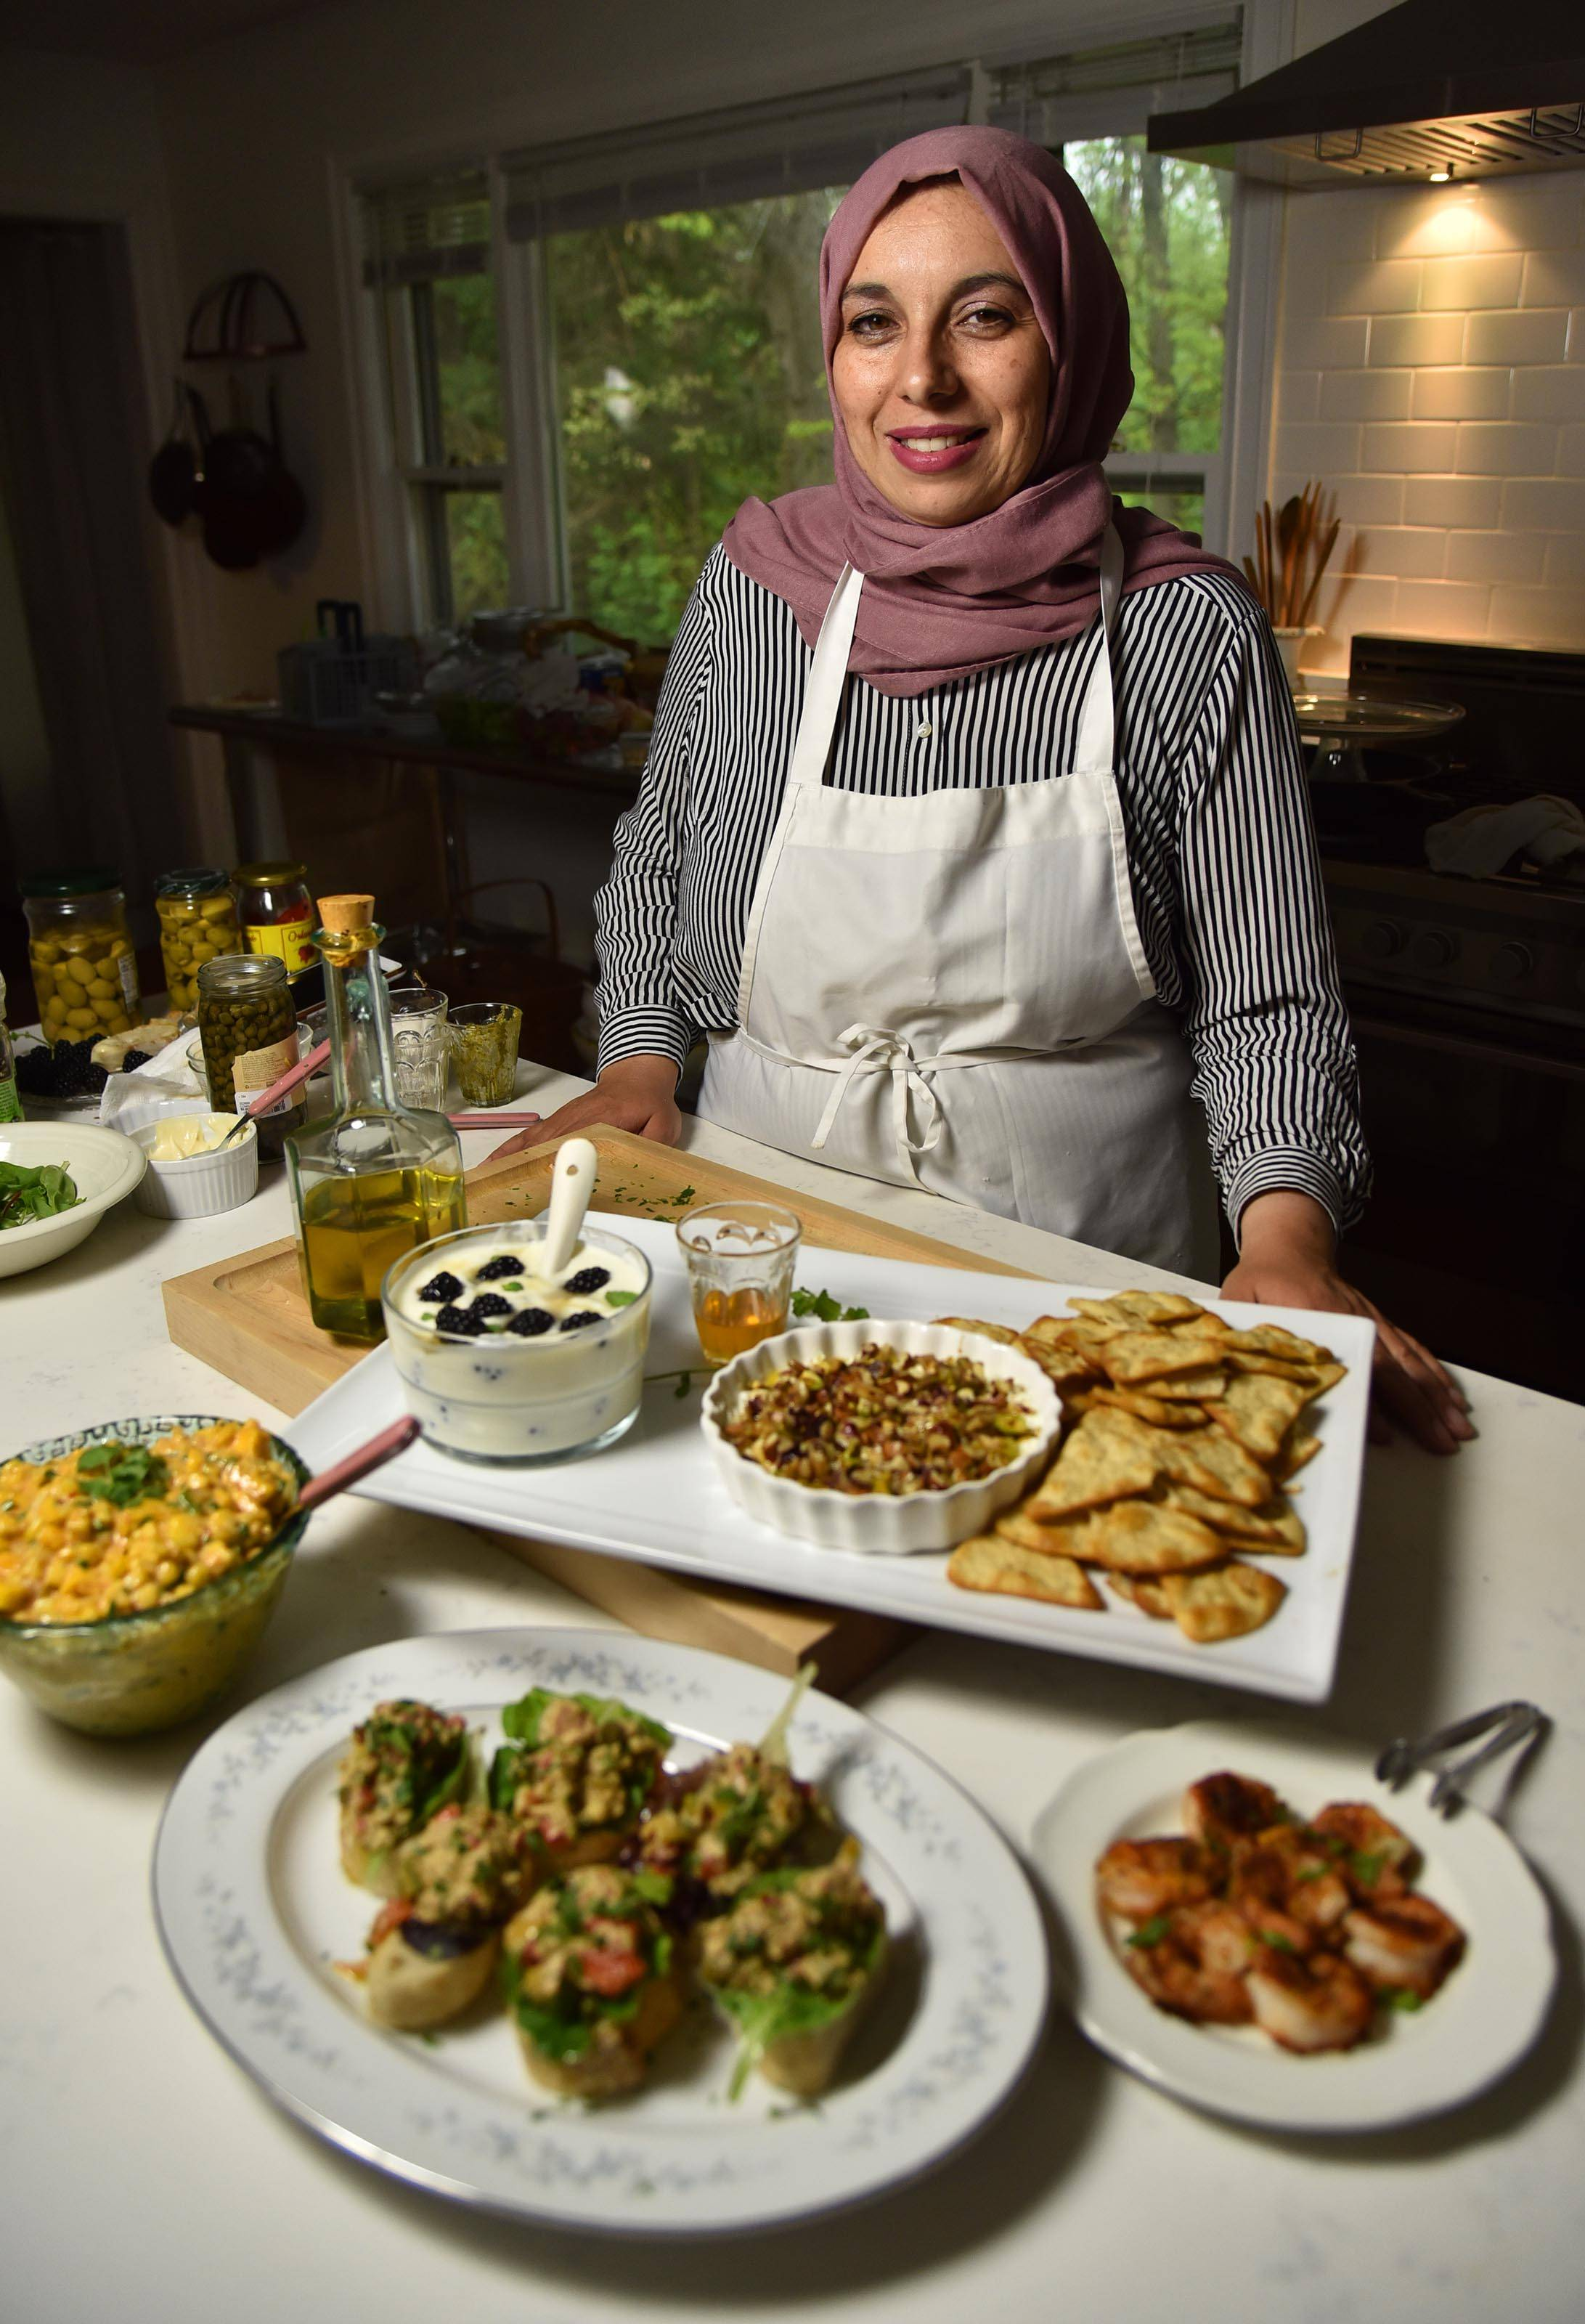 Yvonne Maffei, a halal food blogger from Crystal Lake, encourages eating healthy and wholesome meals when breaking the fast during Ramadan, the Islamic month beginning midweek.